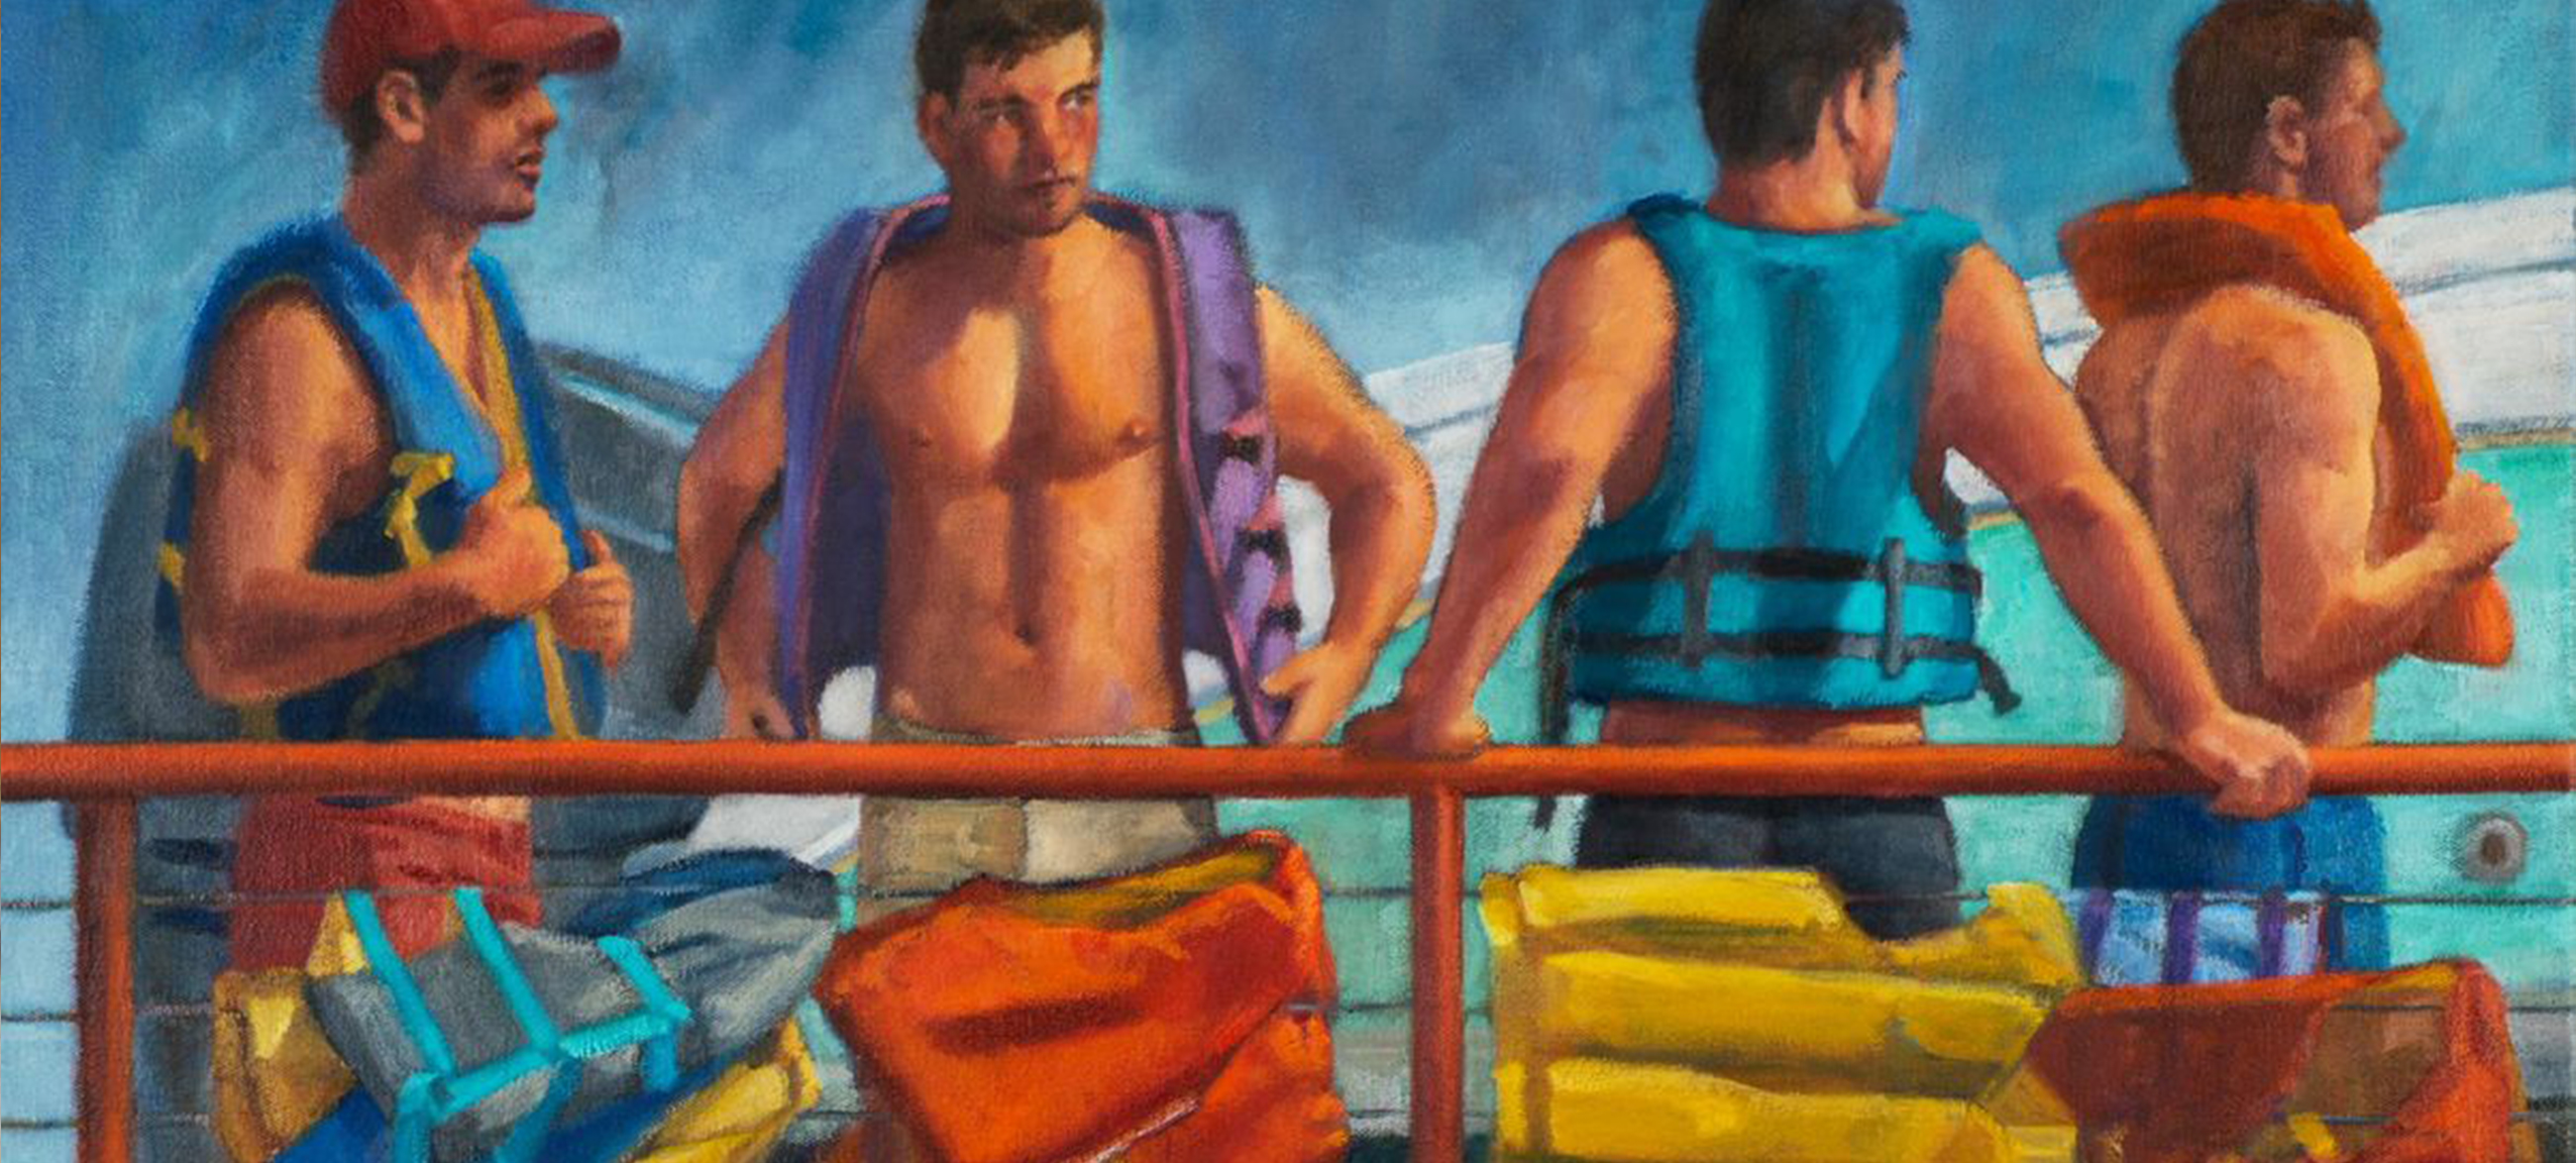 Robert Morgan, Boating Buddies